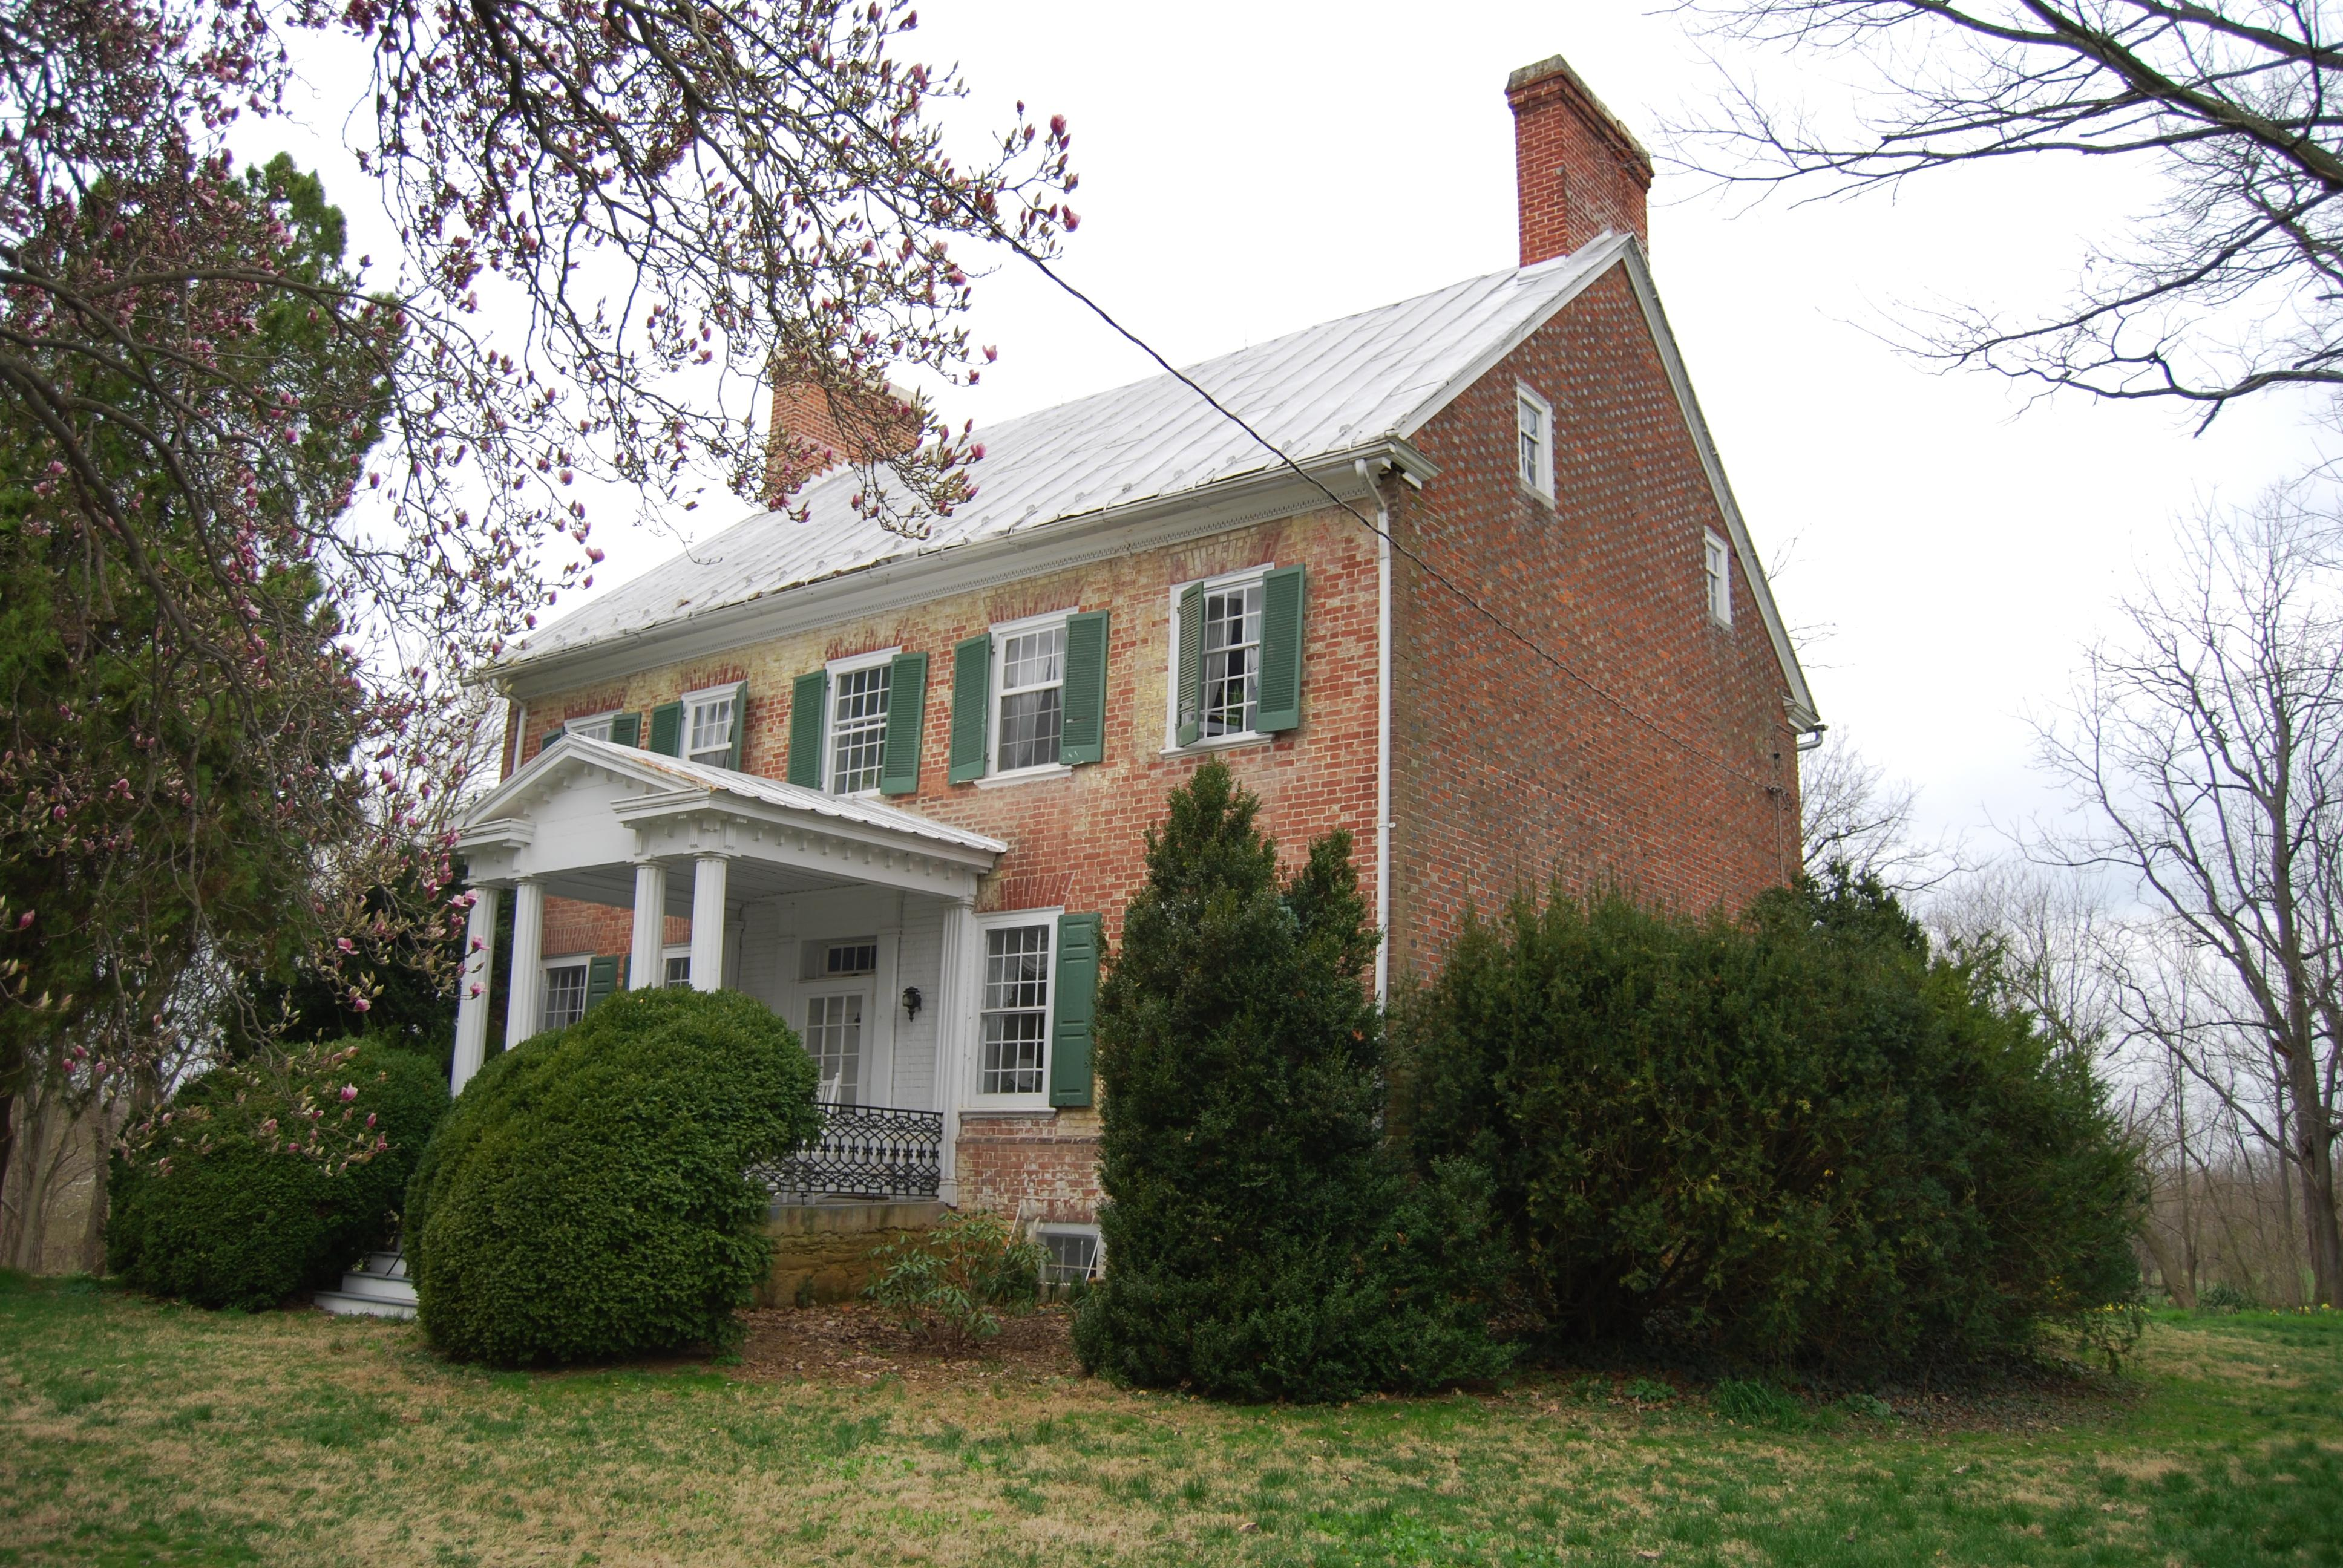 Elmwood remains a beautiful structure and a testament to the importance of historic preservation of Jefferson County's homes.